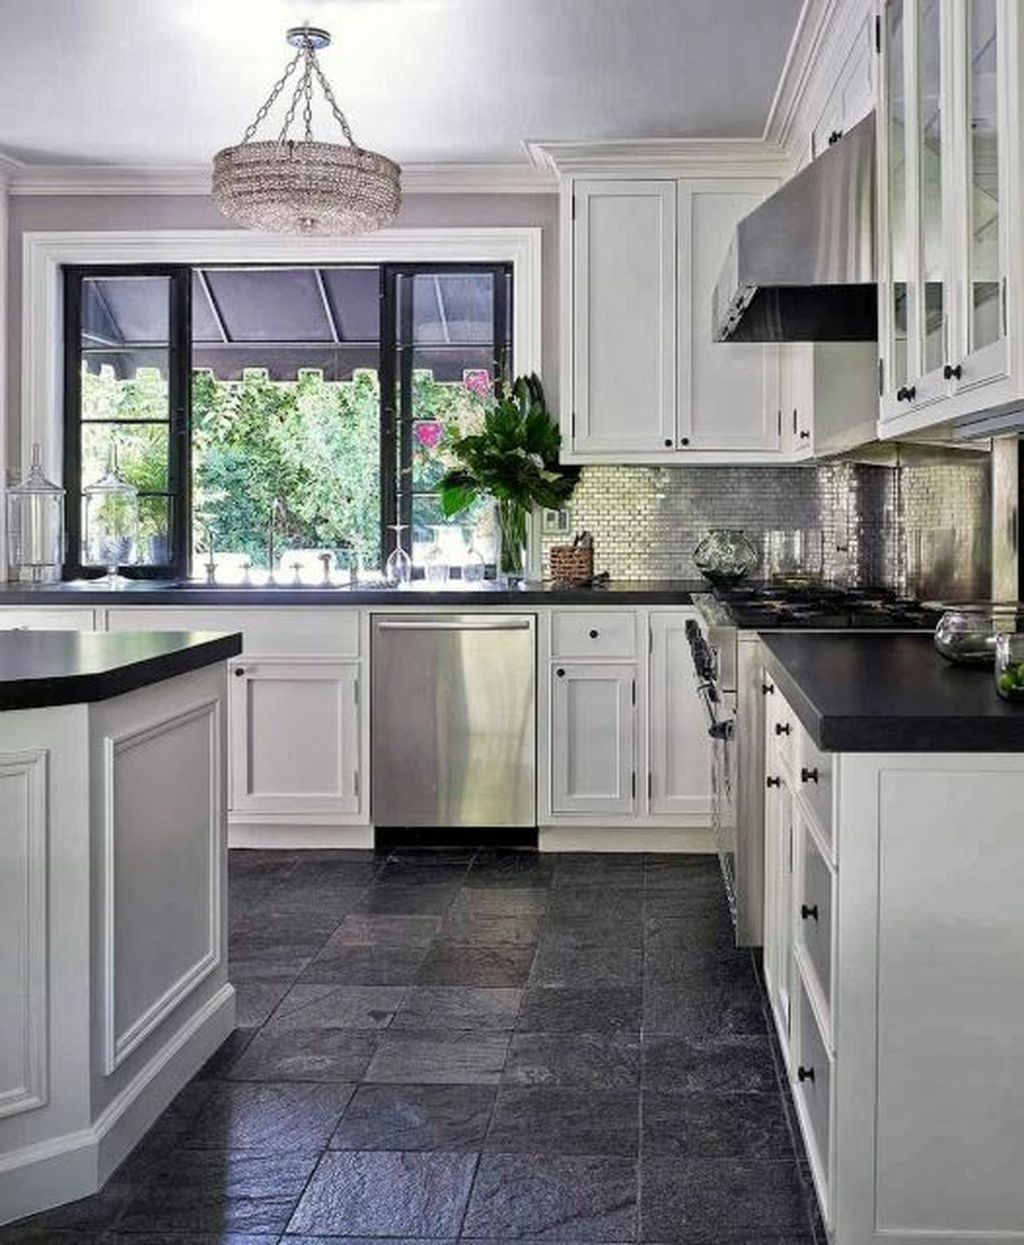 Modern Grey and White Kitchen Decoration Ideas 9   Gray and white ...